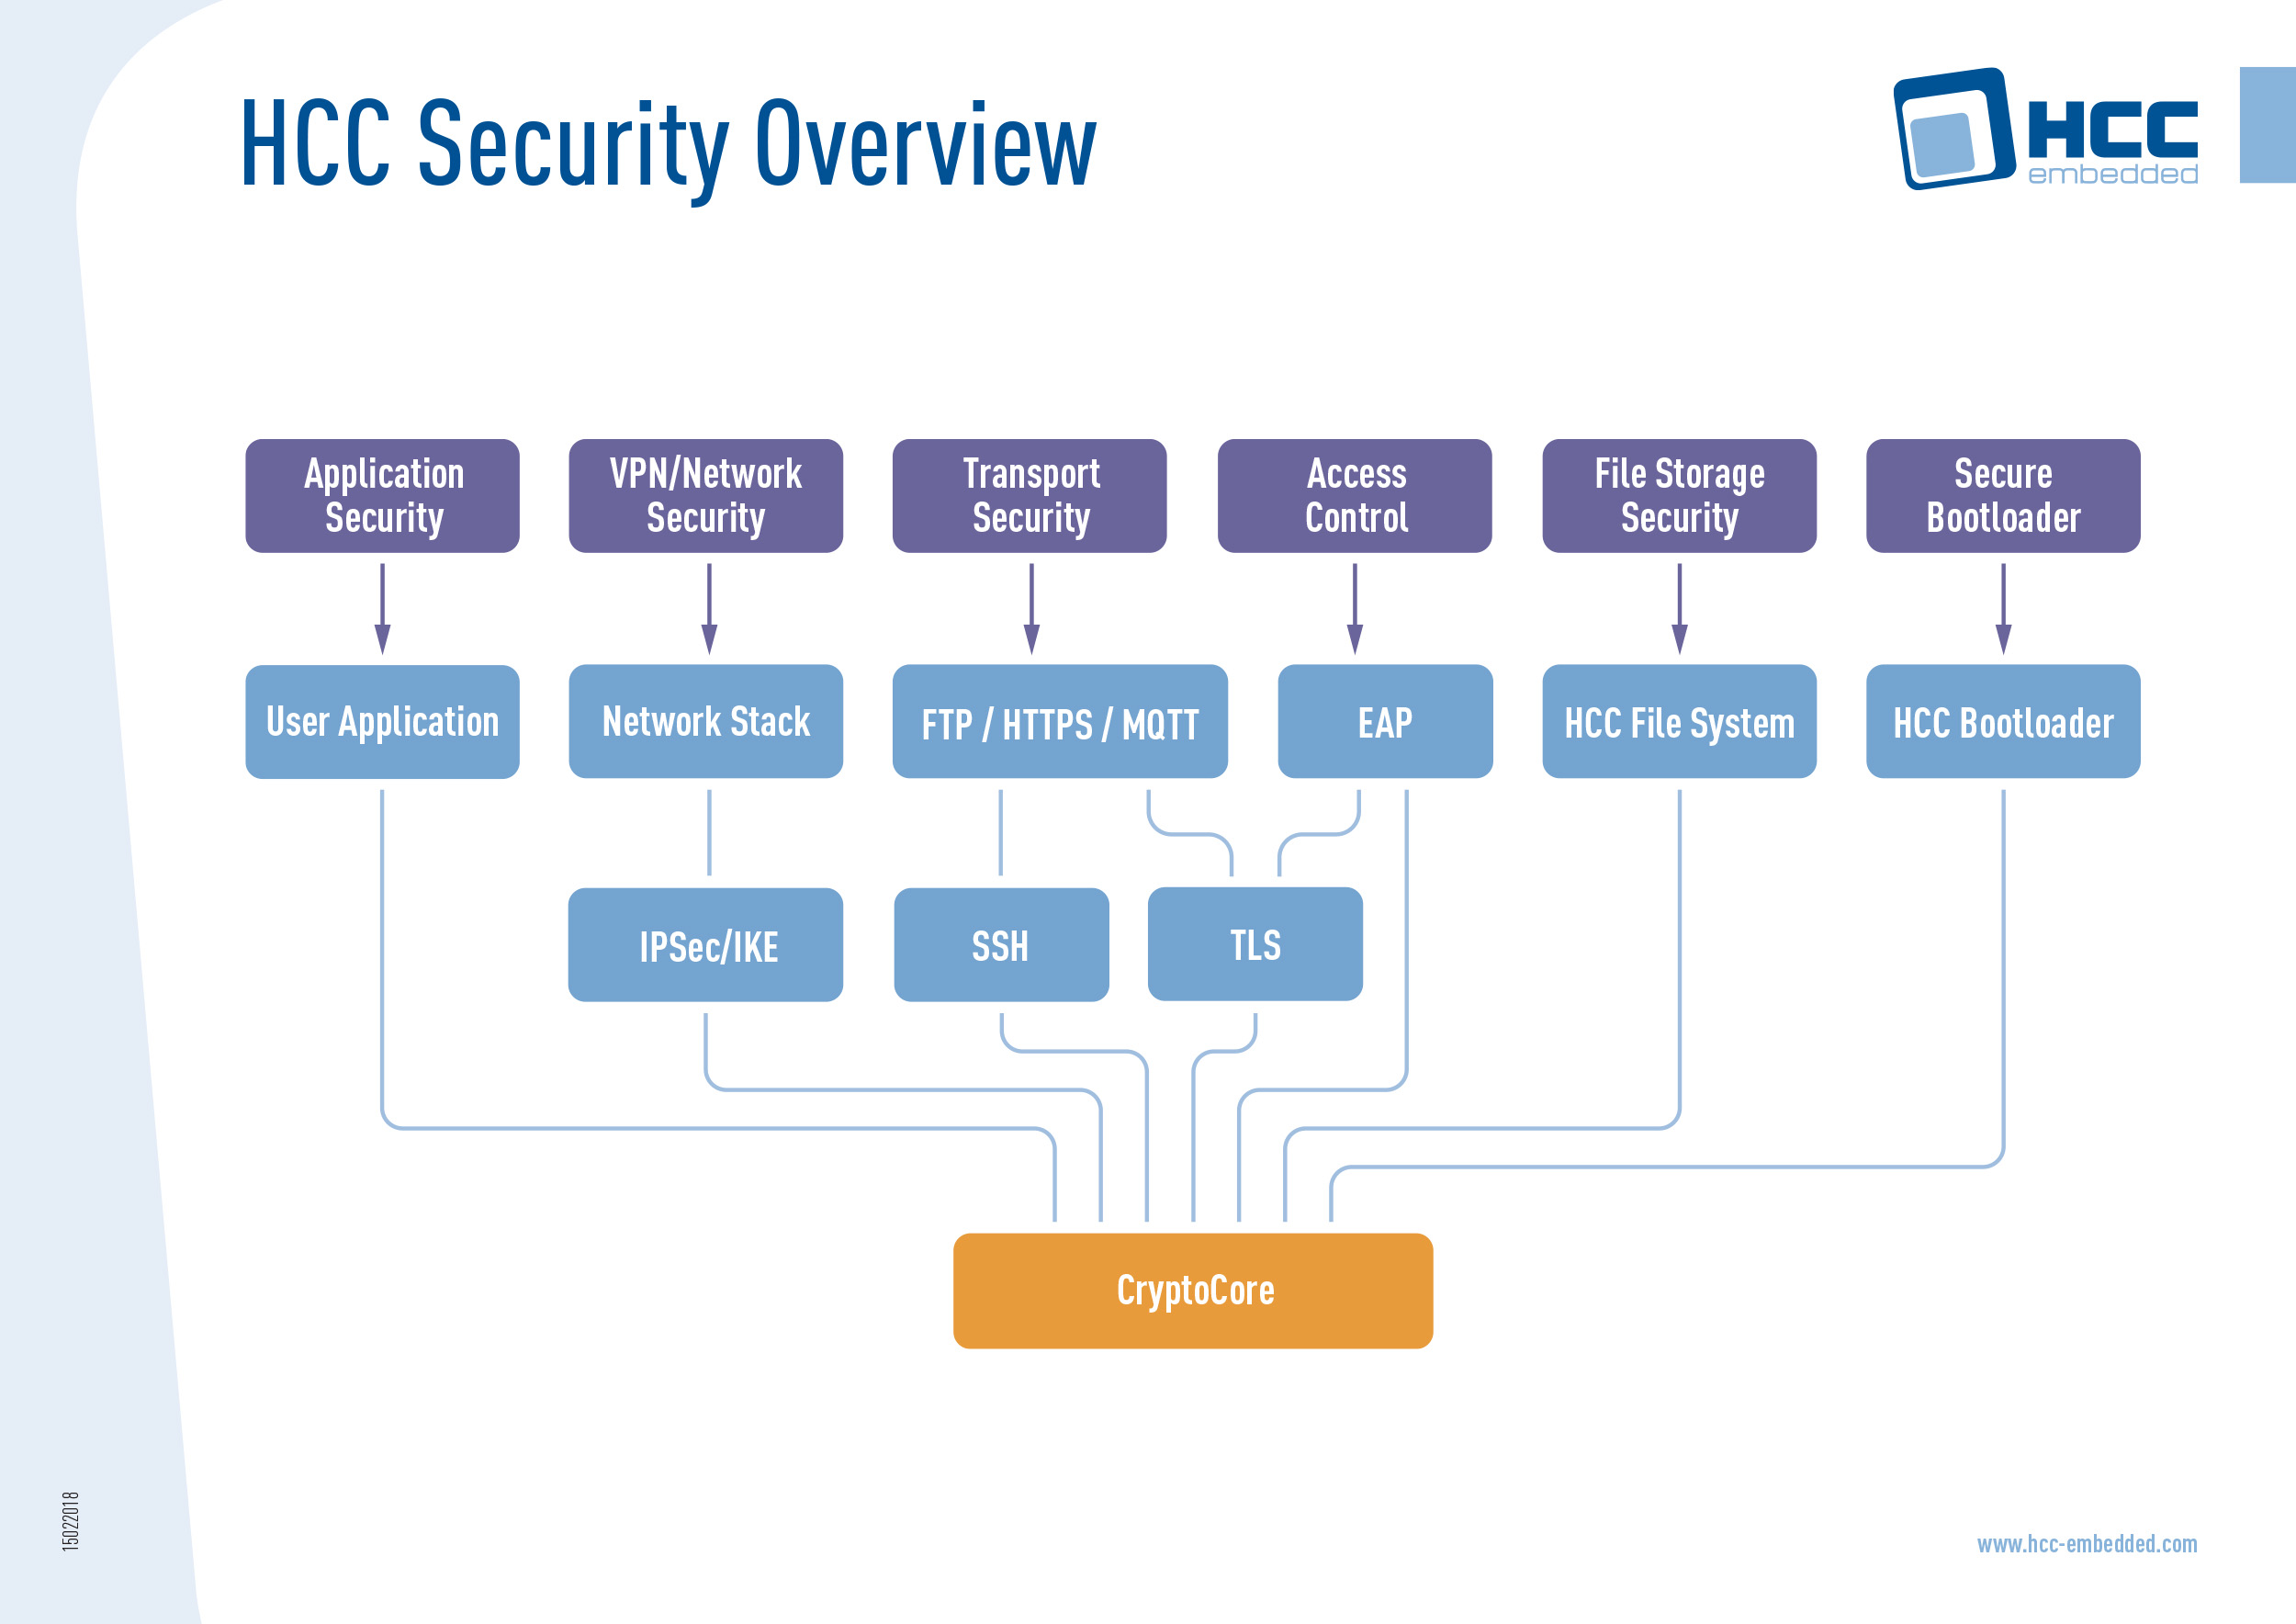 HCC Security Overview